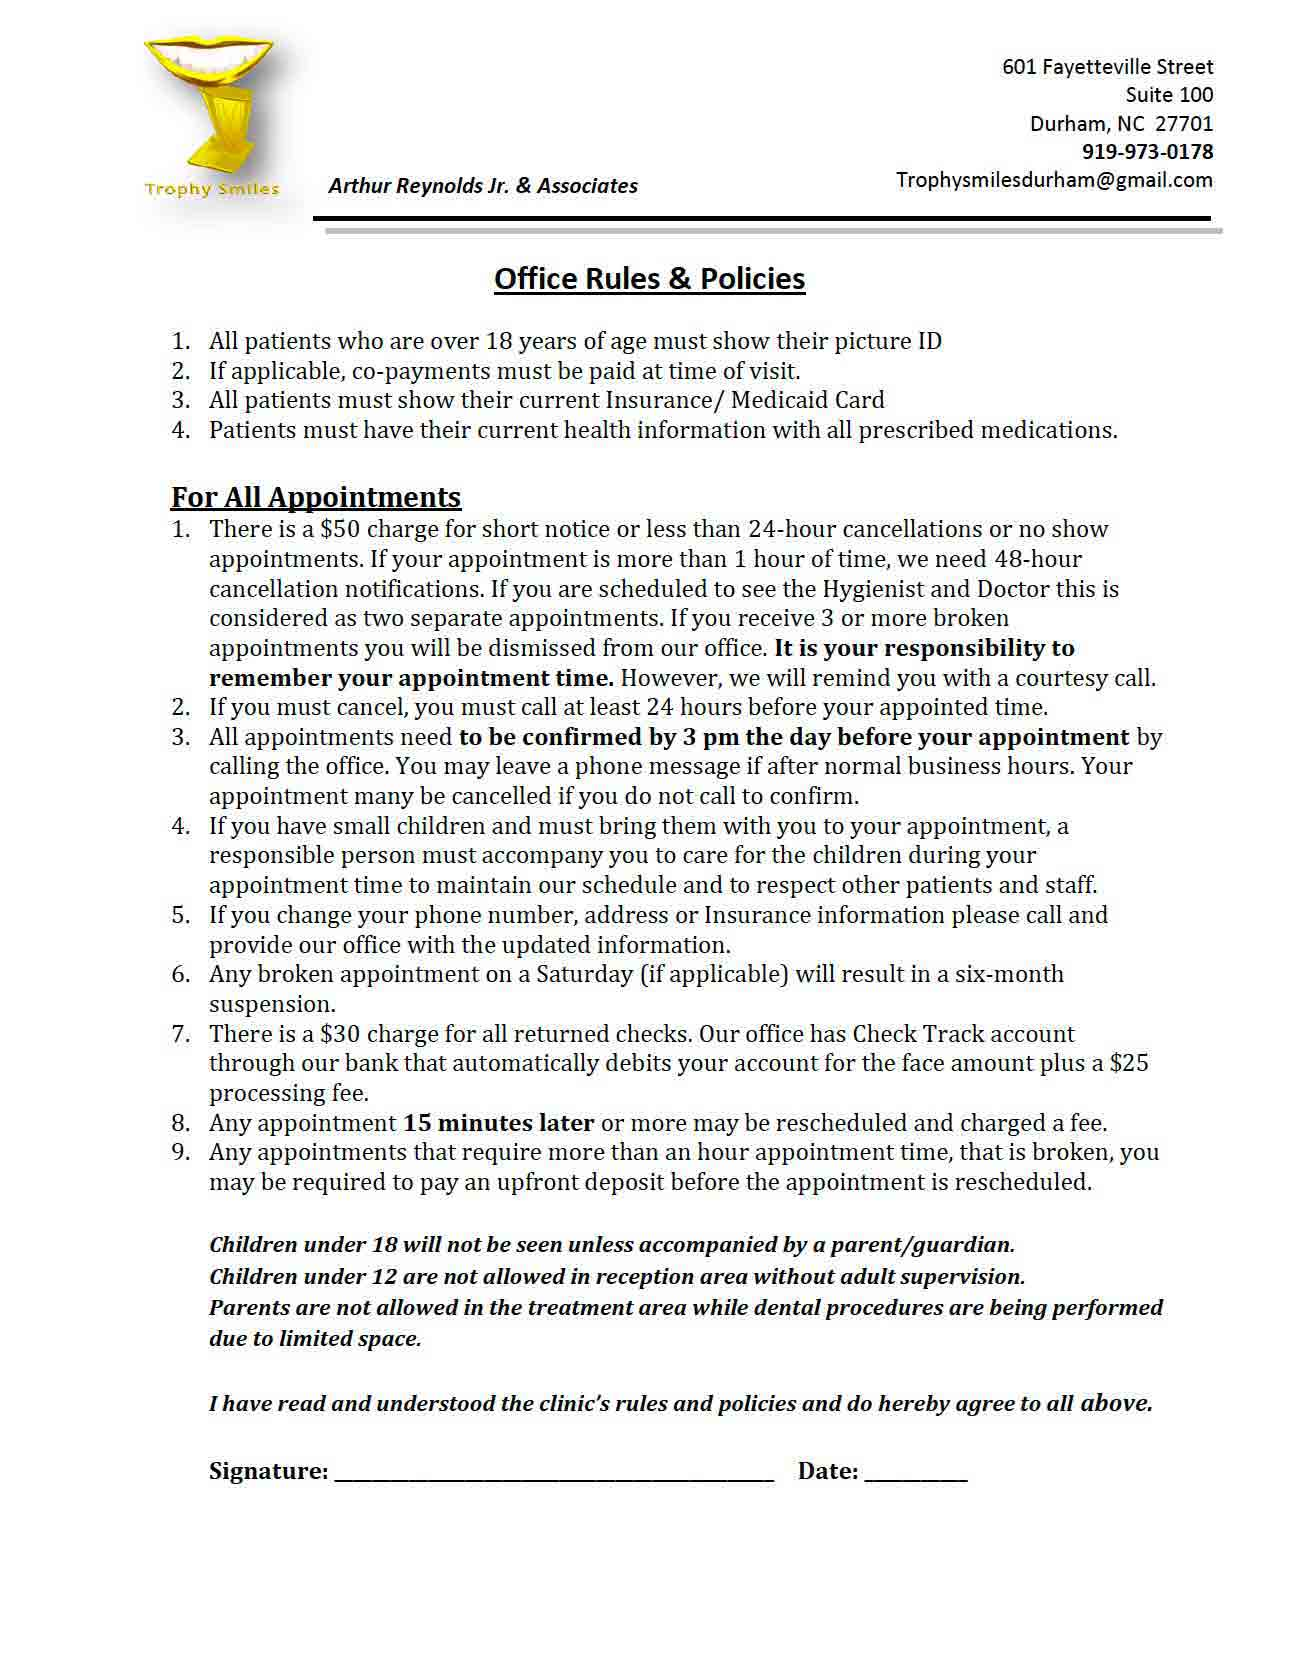 Office Rules & Policies